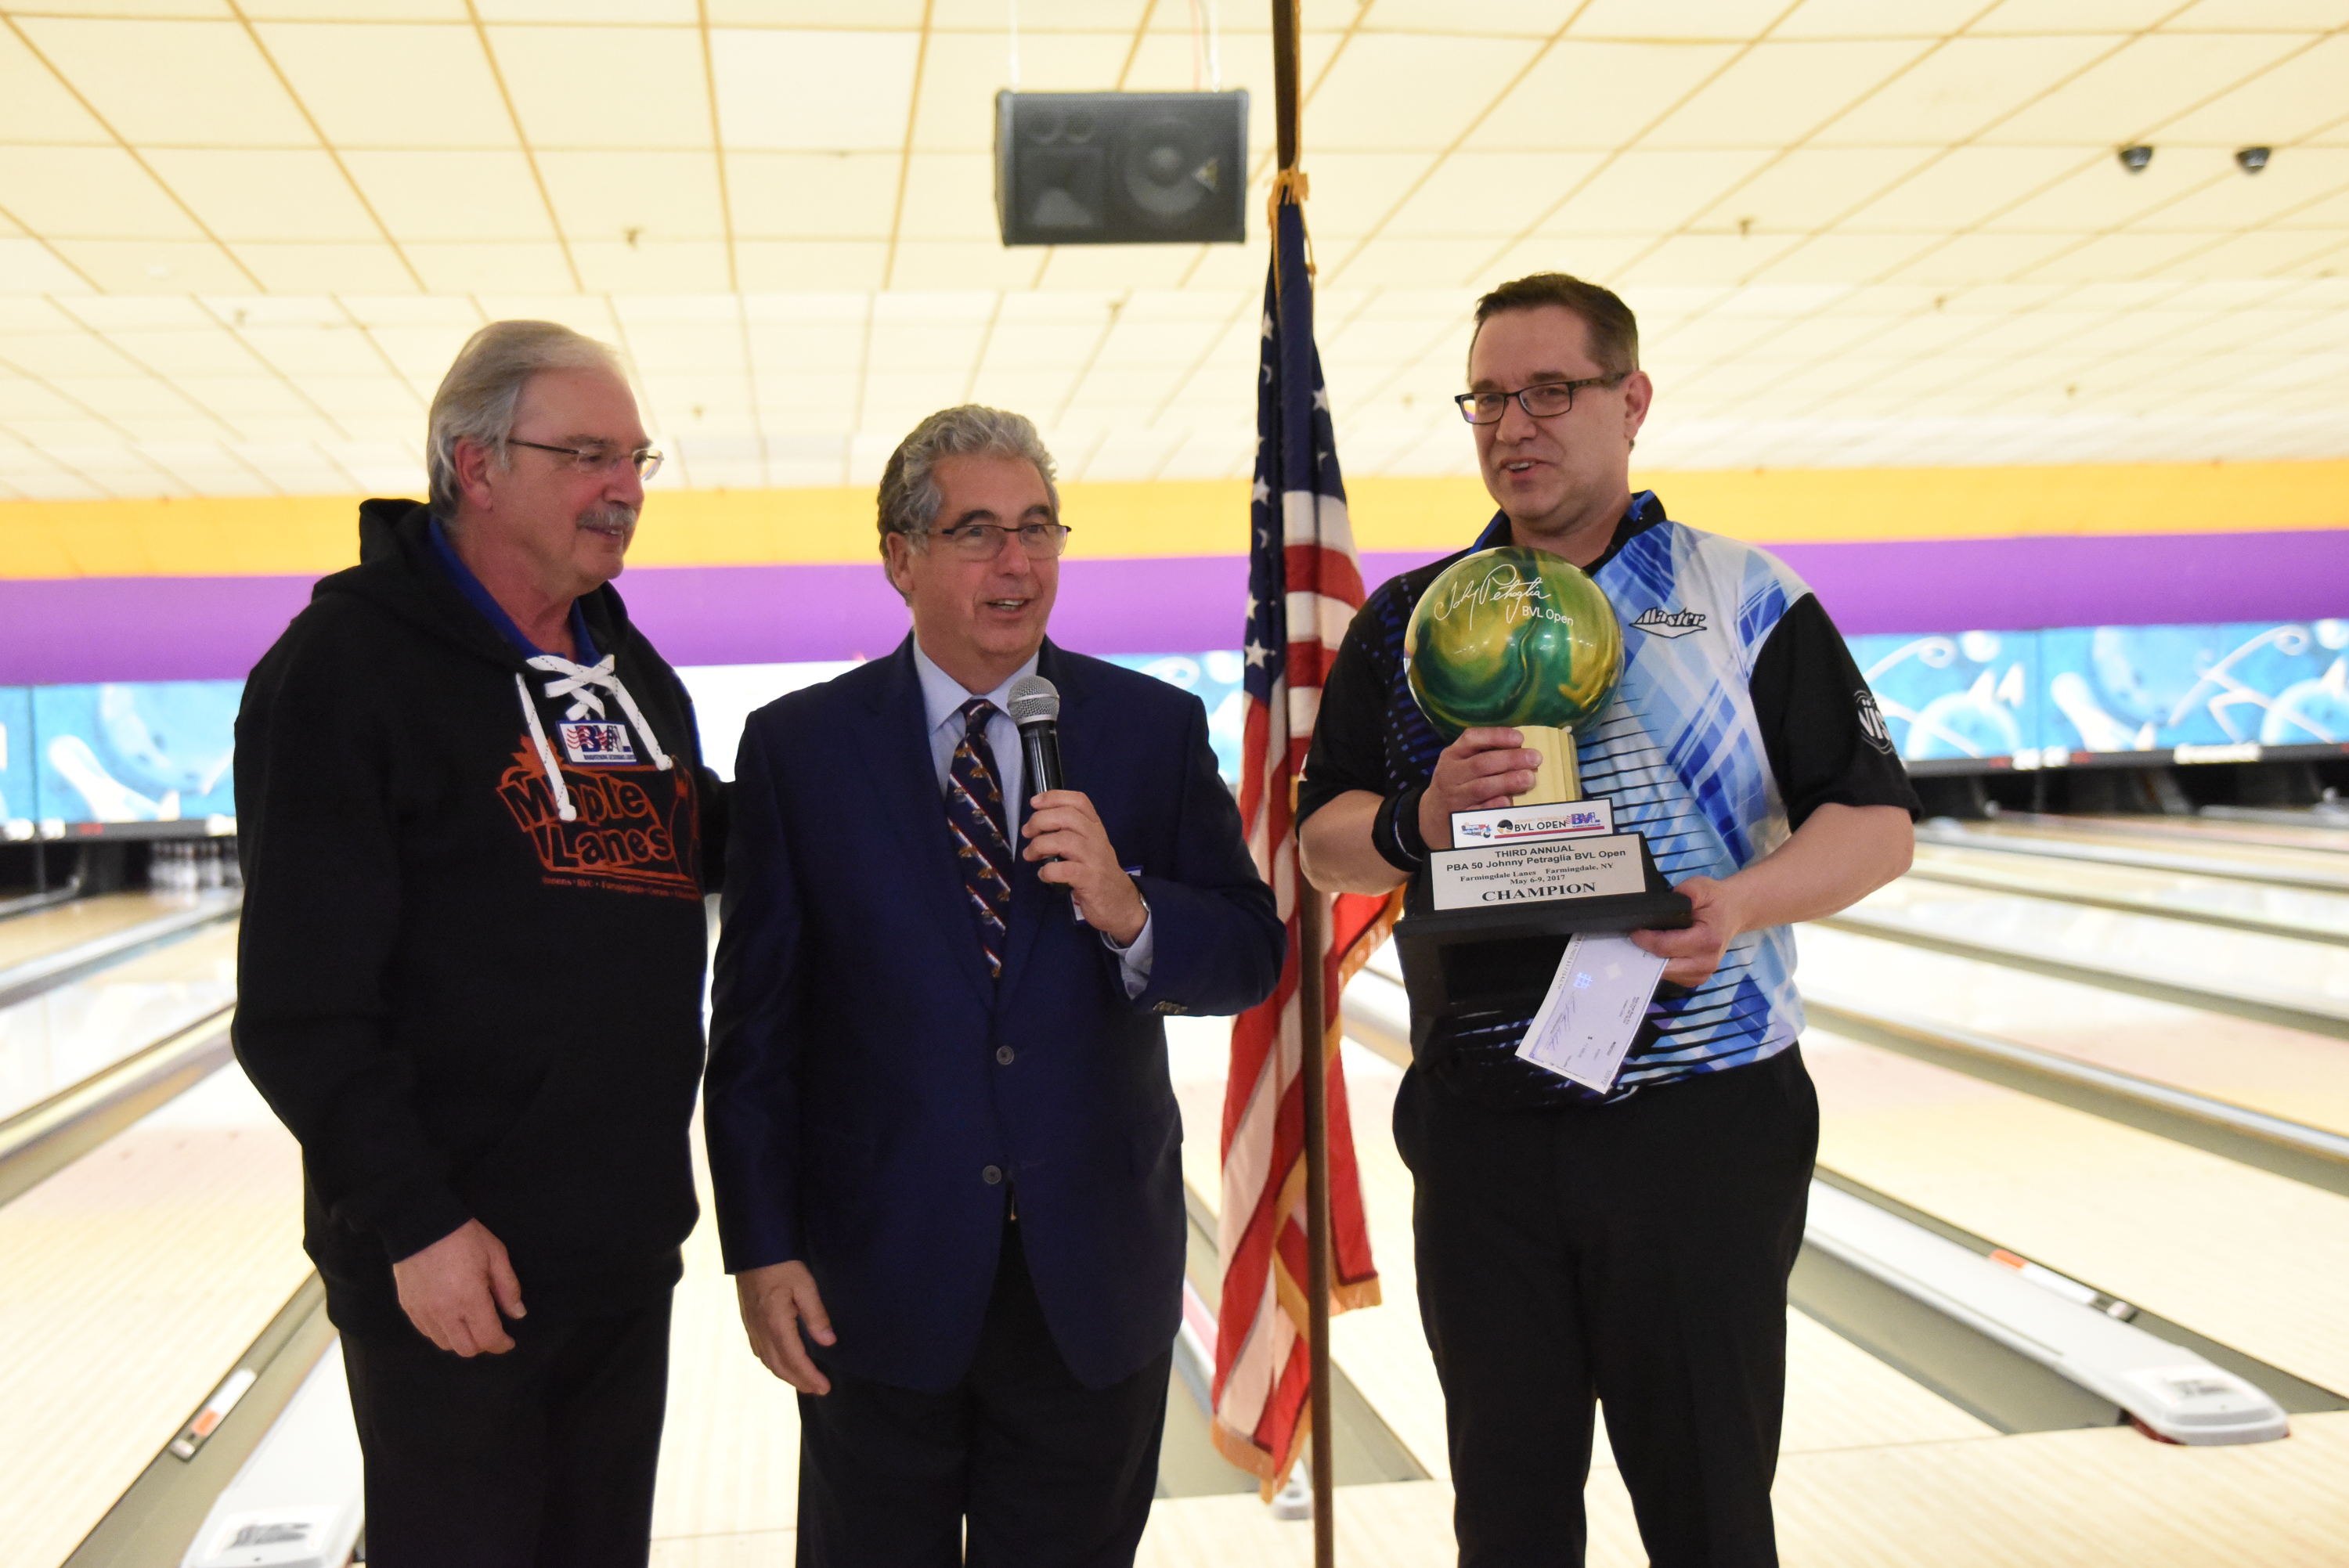 Brian LeClair Wins Johnny Petraglia BVL Open